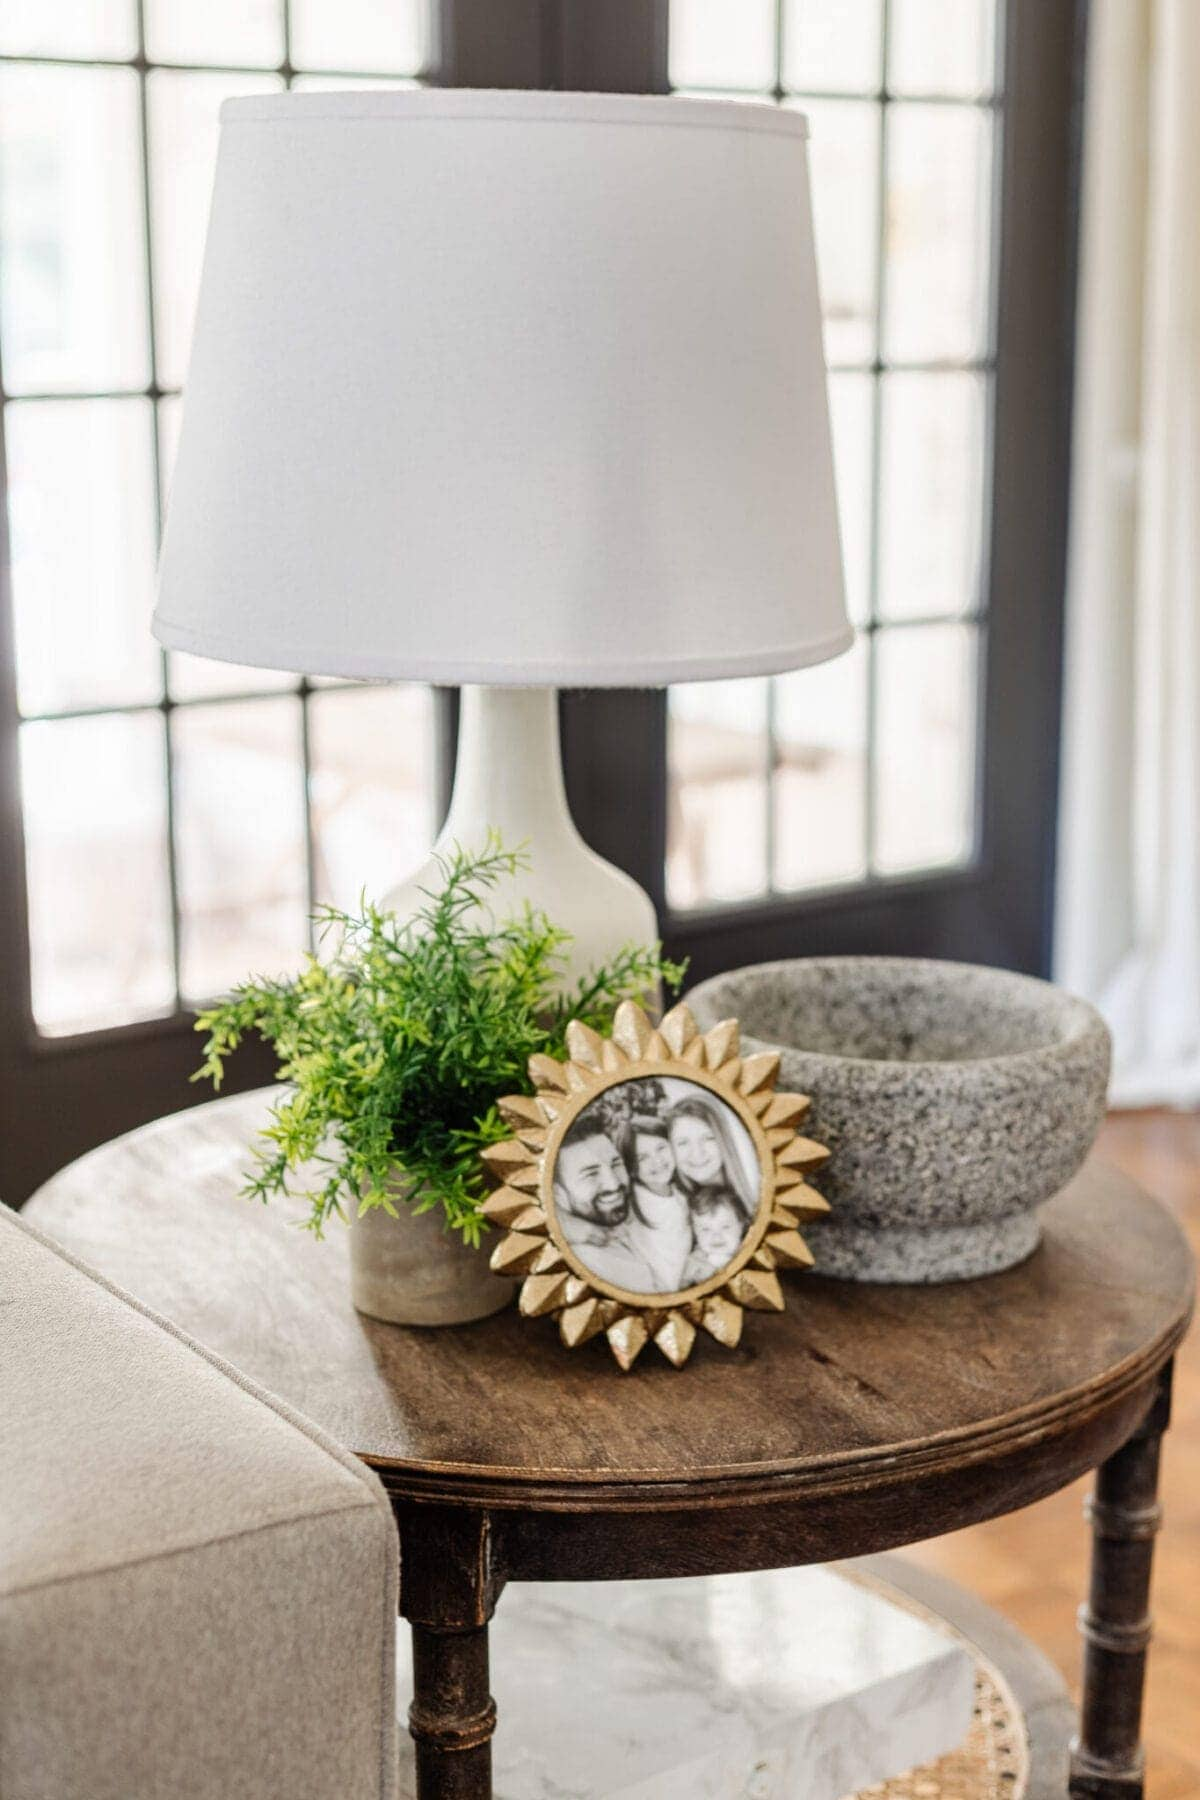 Winter Decor on an End Table